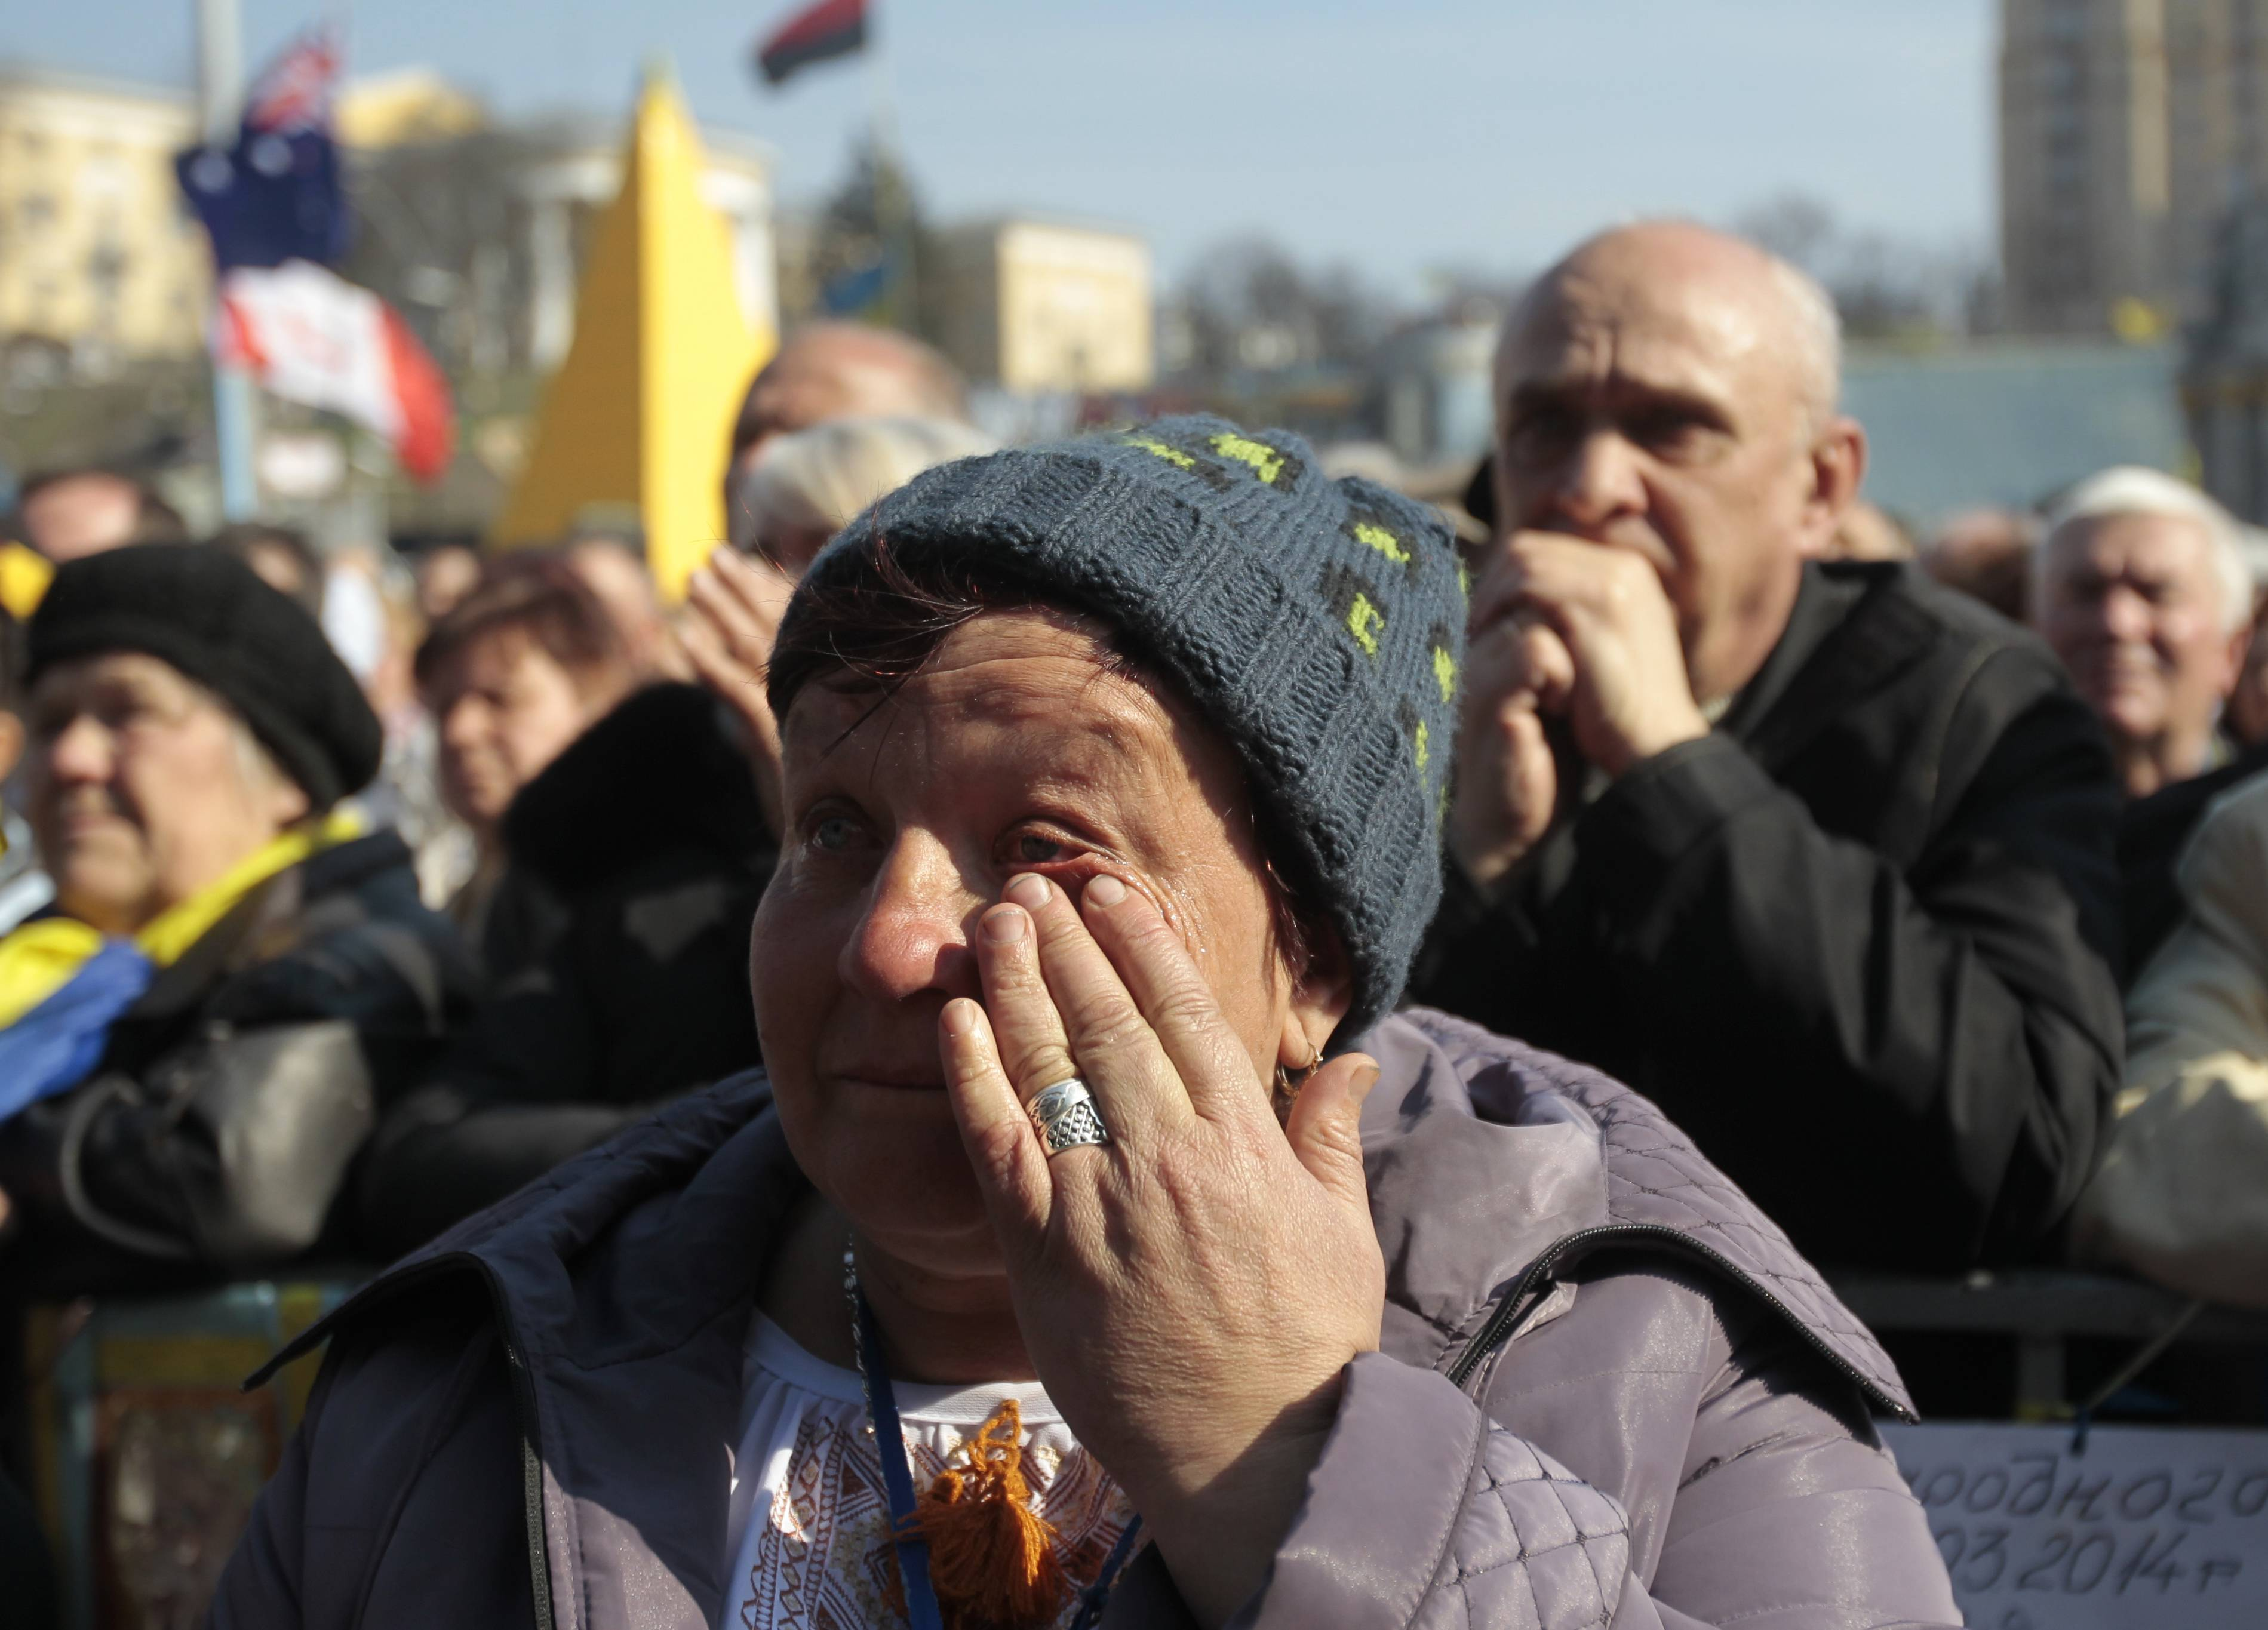 People rally in support of Ukraine's territorial integrity, in Kiev's Independence Square, Ukraine, Sunday. Thousands of demonstrators gathered for a weekly rally in support of a united Ukraine and against the aggression of the Russian Federation.